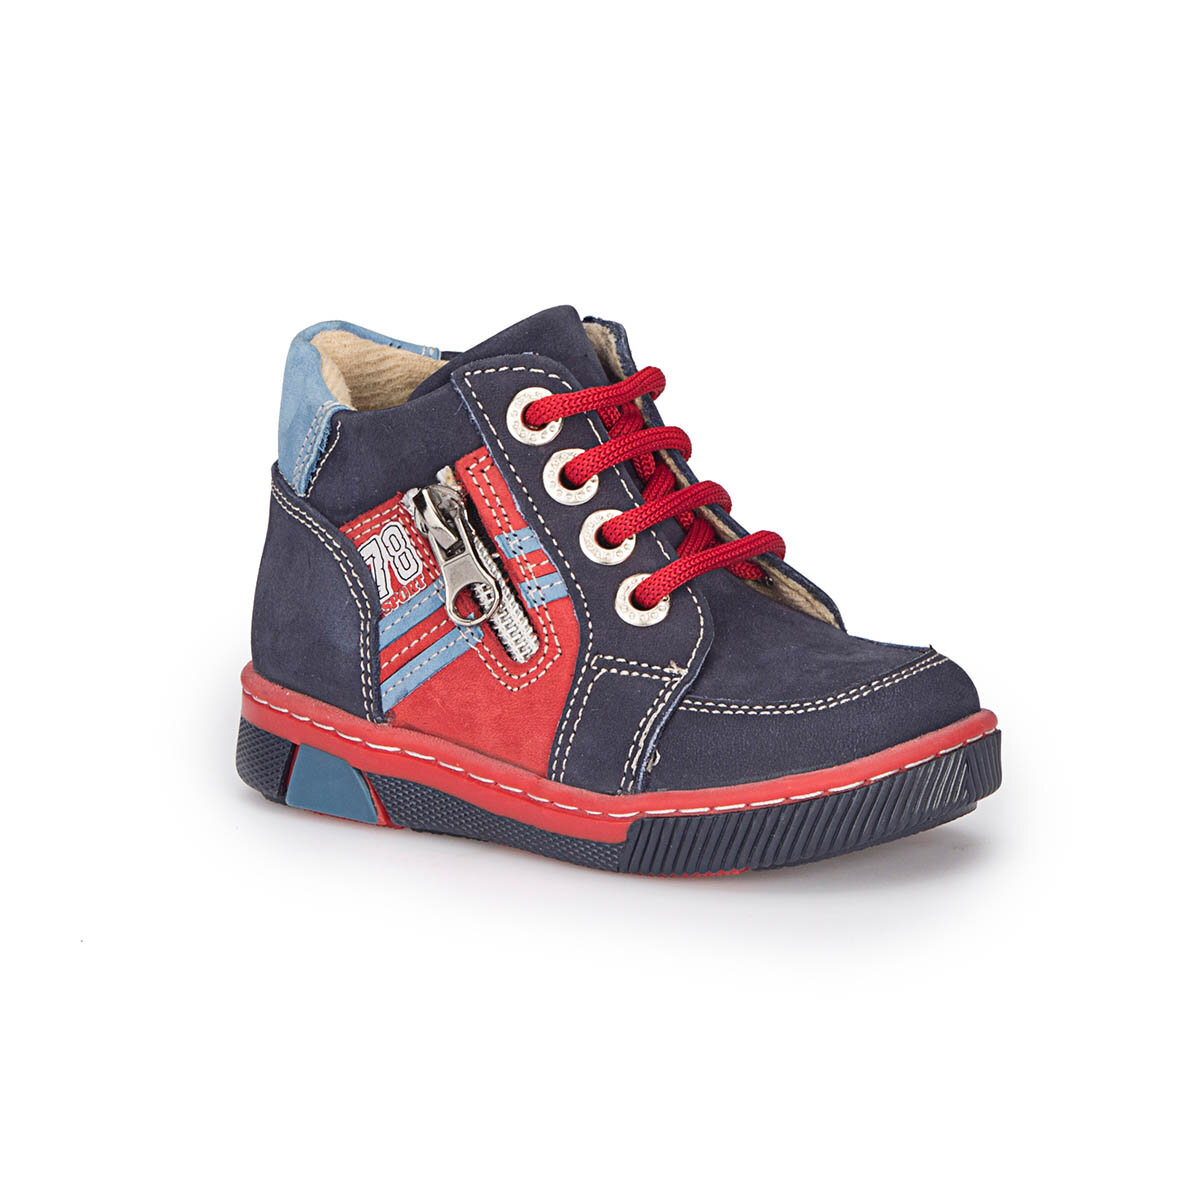 FLO 72.508424.B Navy Blue Male Child Sneaker Shoes Polaris